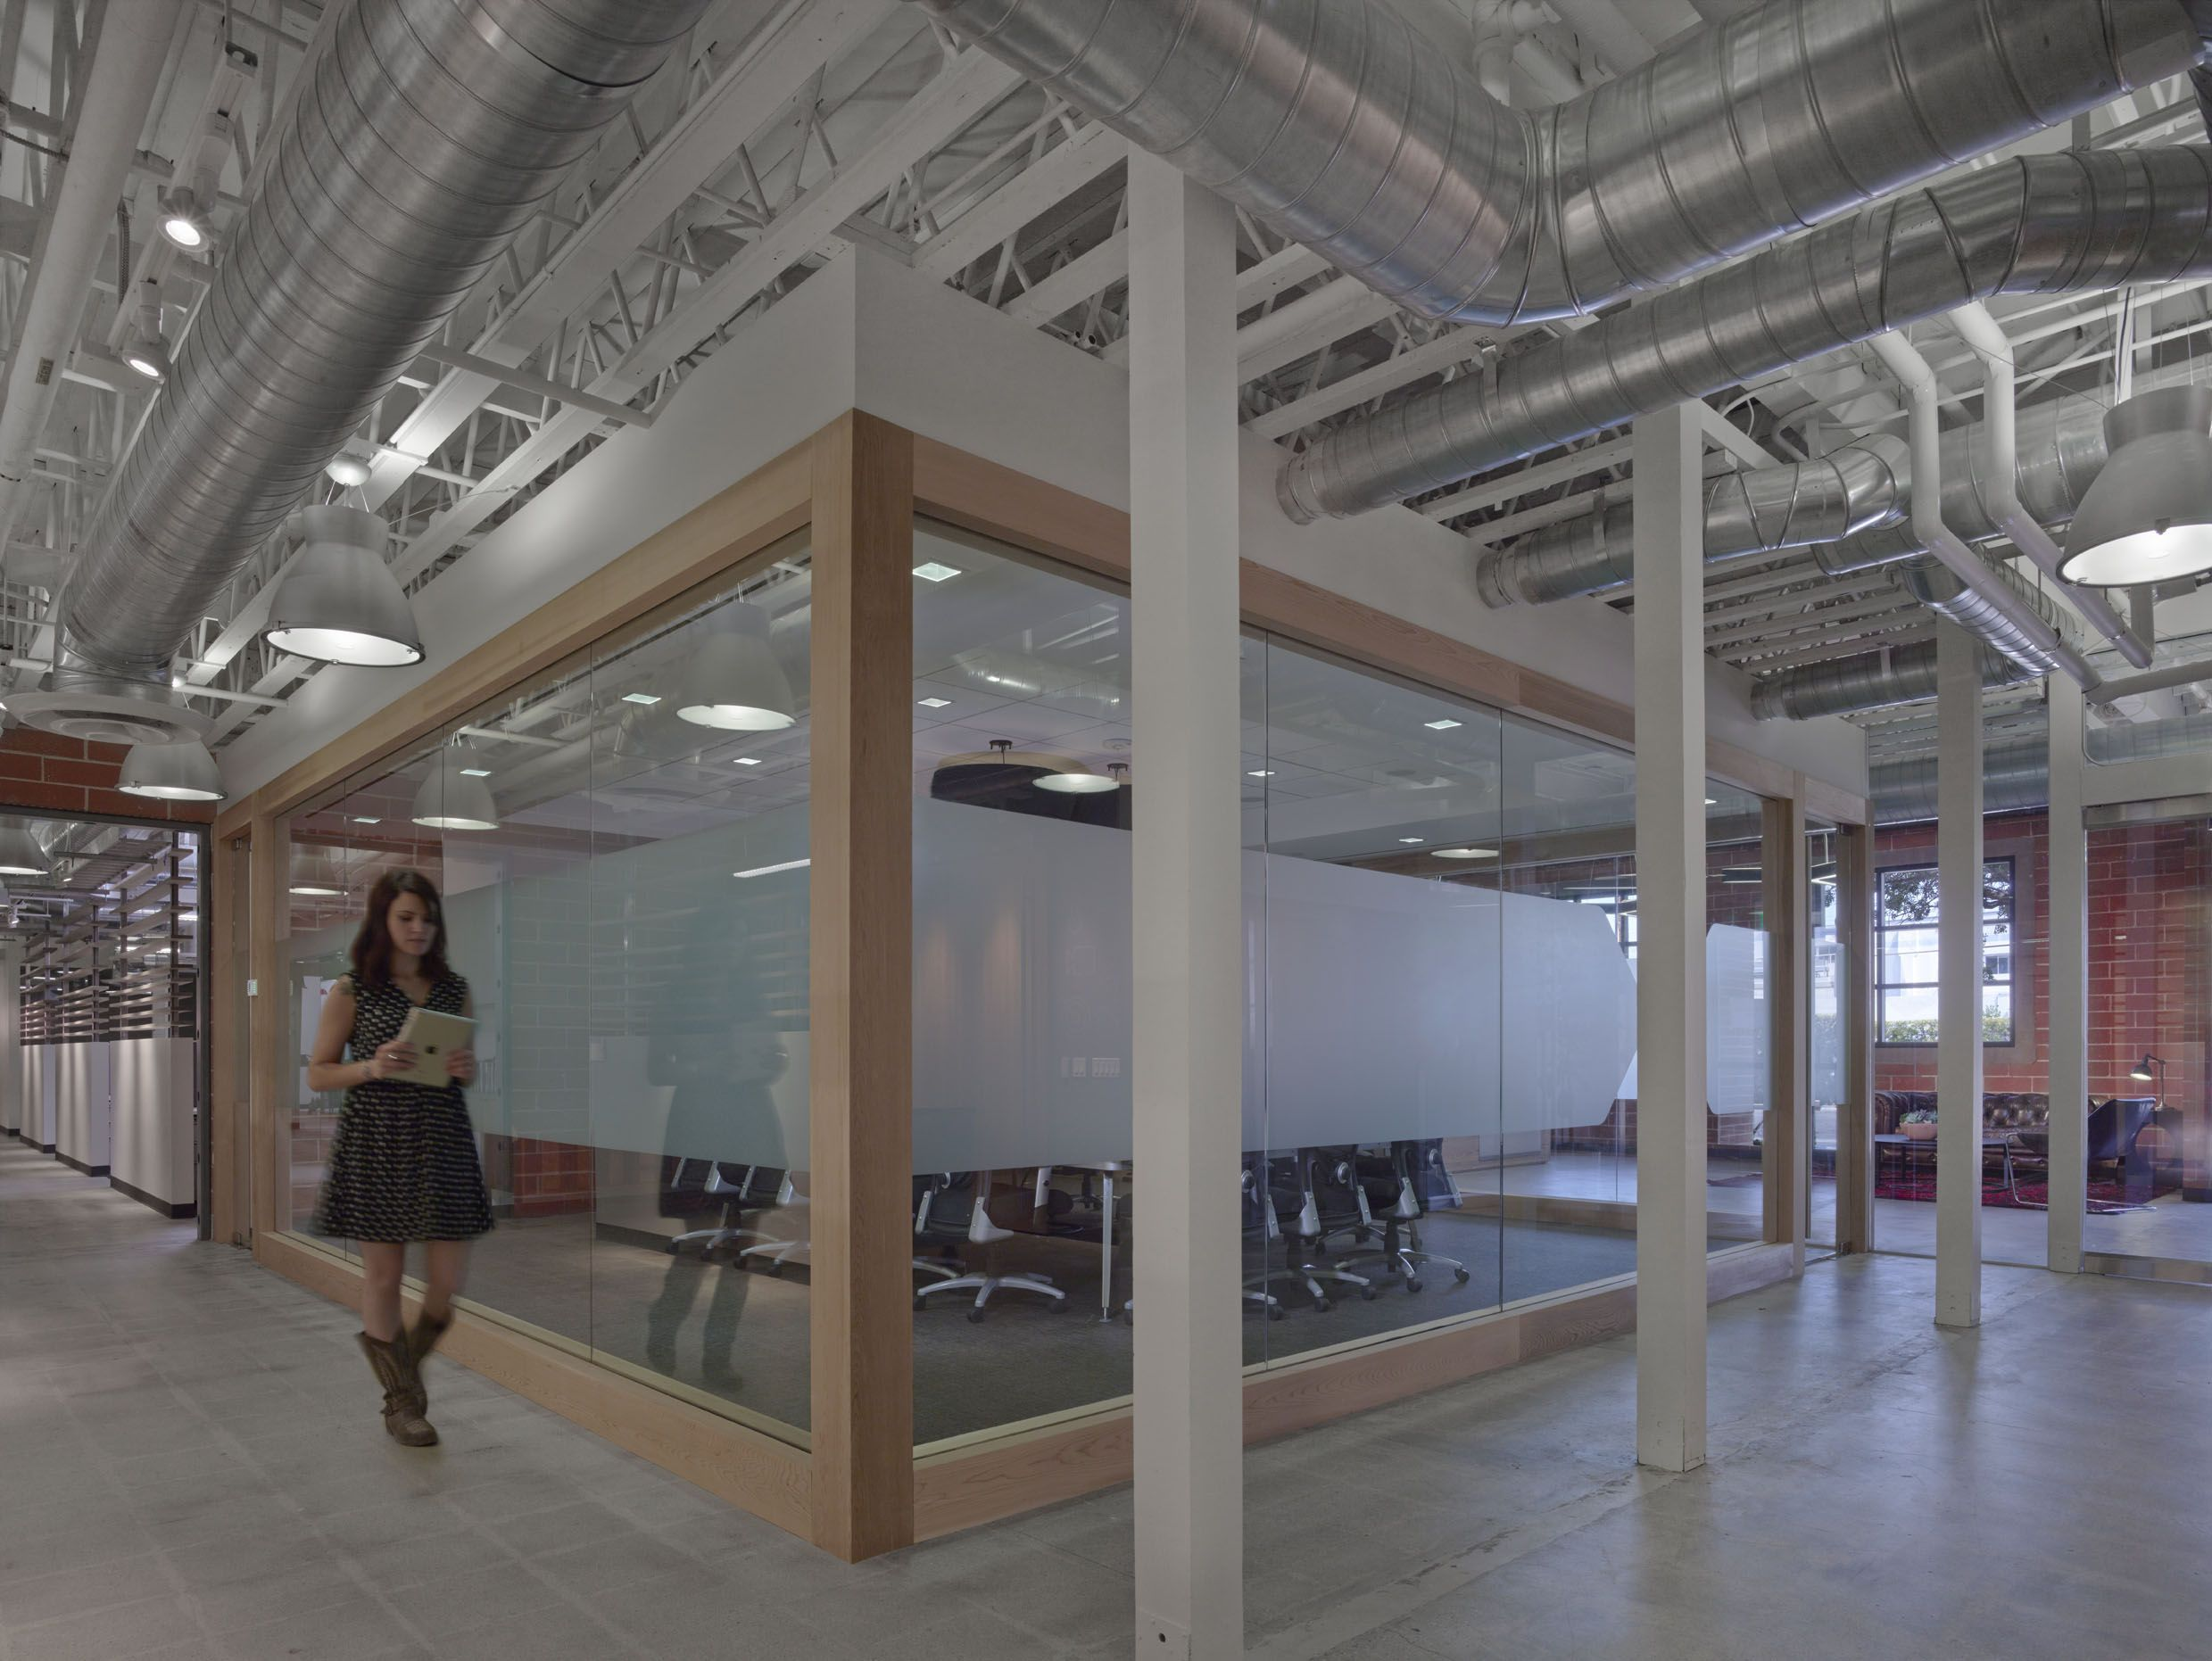 office industrial. division btw two spaces demand media creative design office industrial